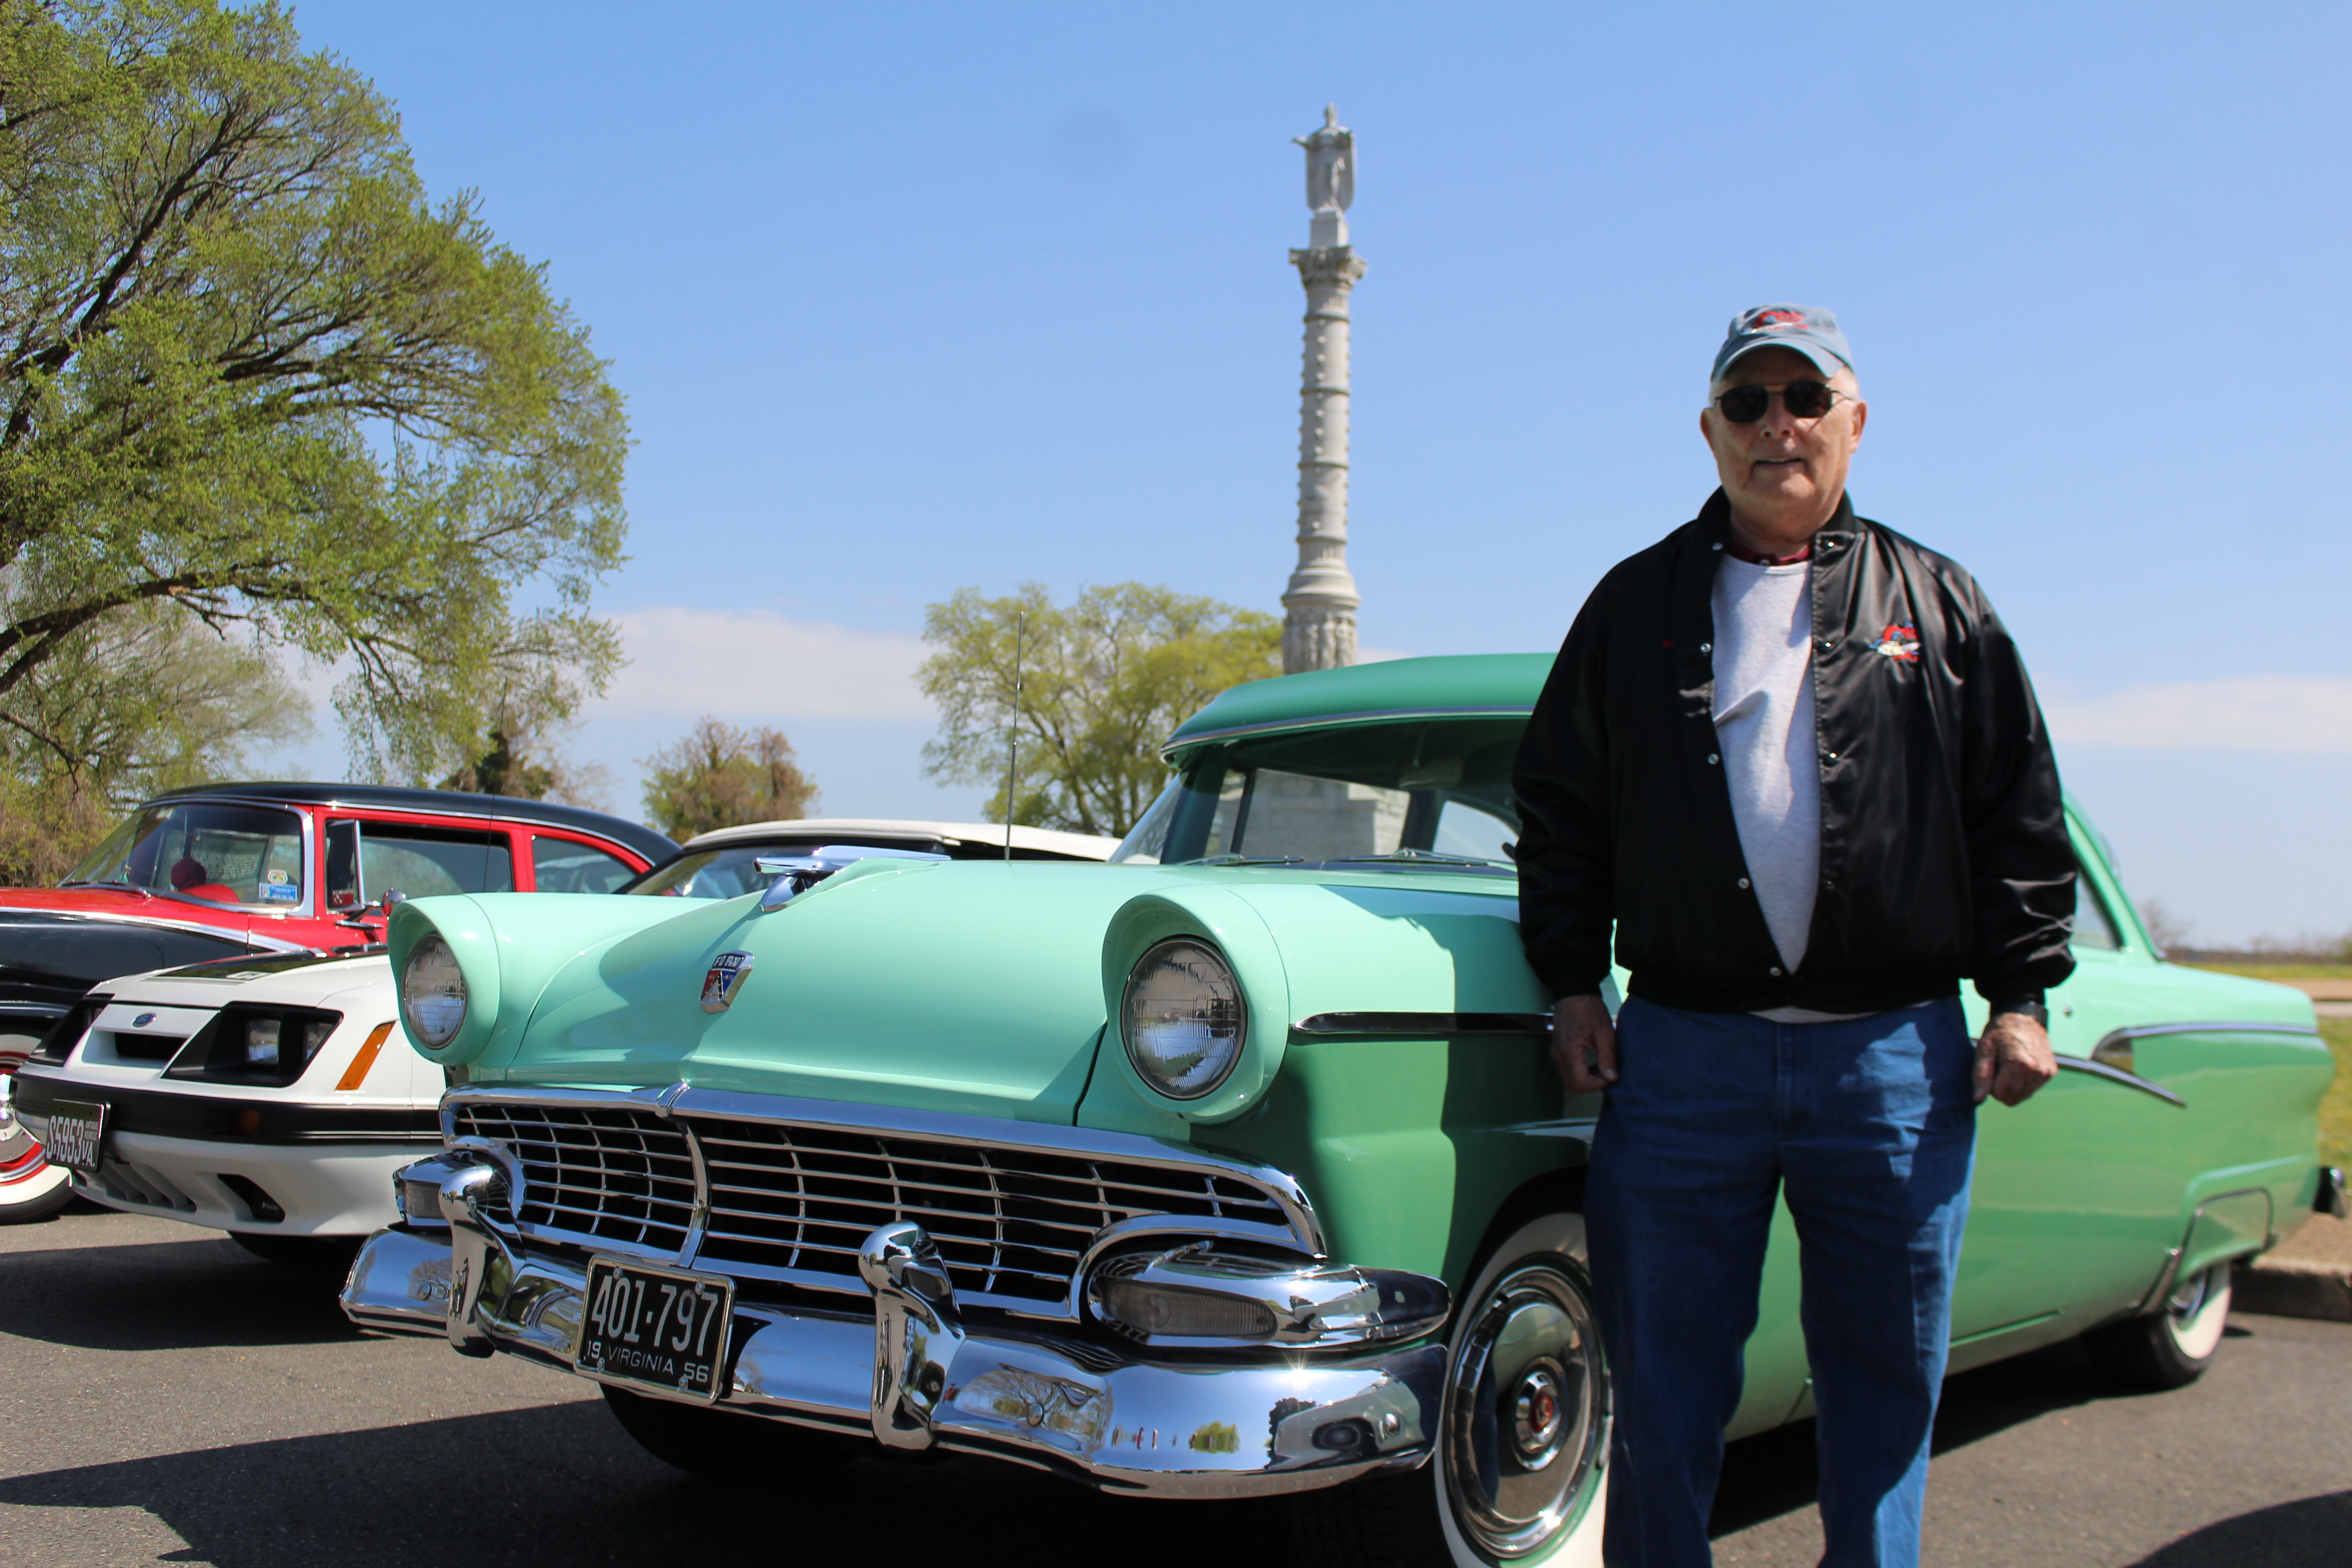 Like High School But With Better Cars For These Area Nostalgia 1949 Ford Crown Victoria Ray Colesworthy An Army Veteran And Former Aerospace Engineer Enjoys Working